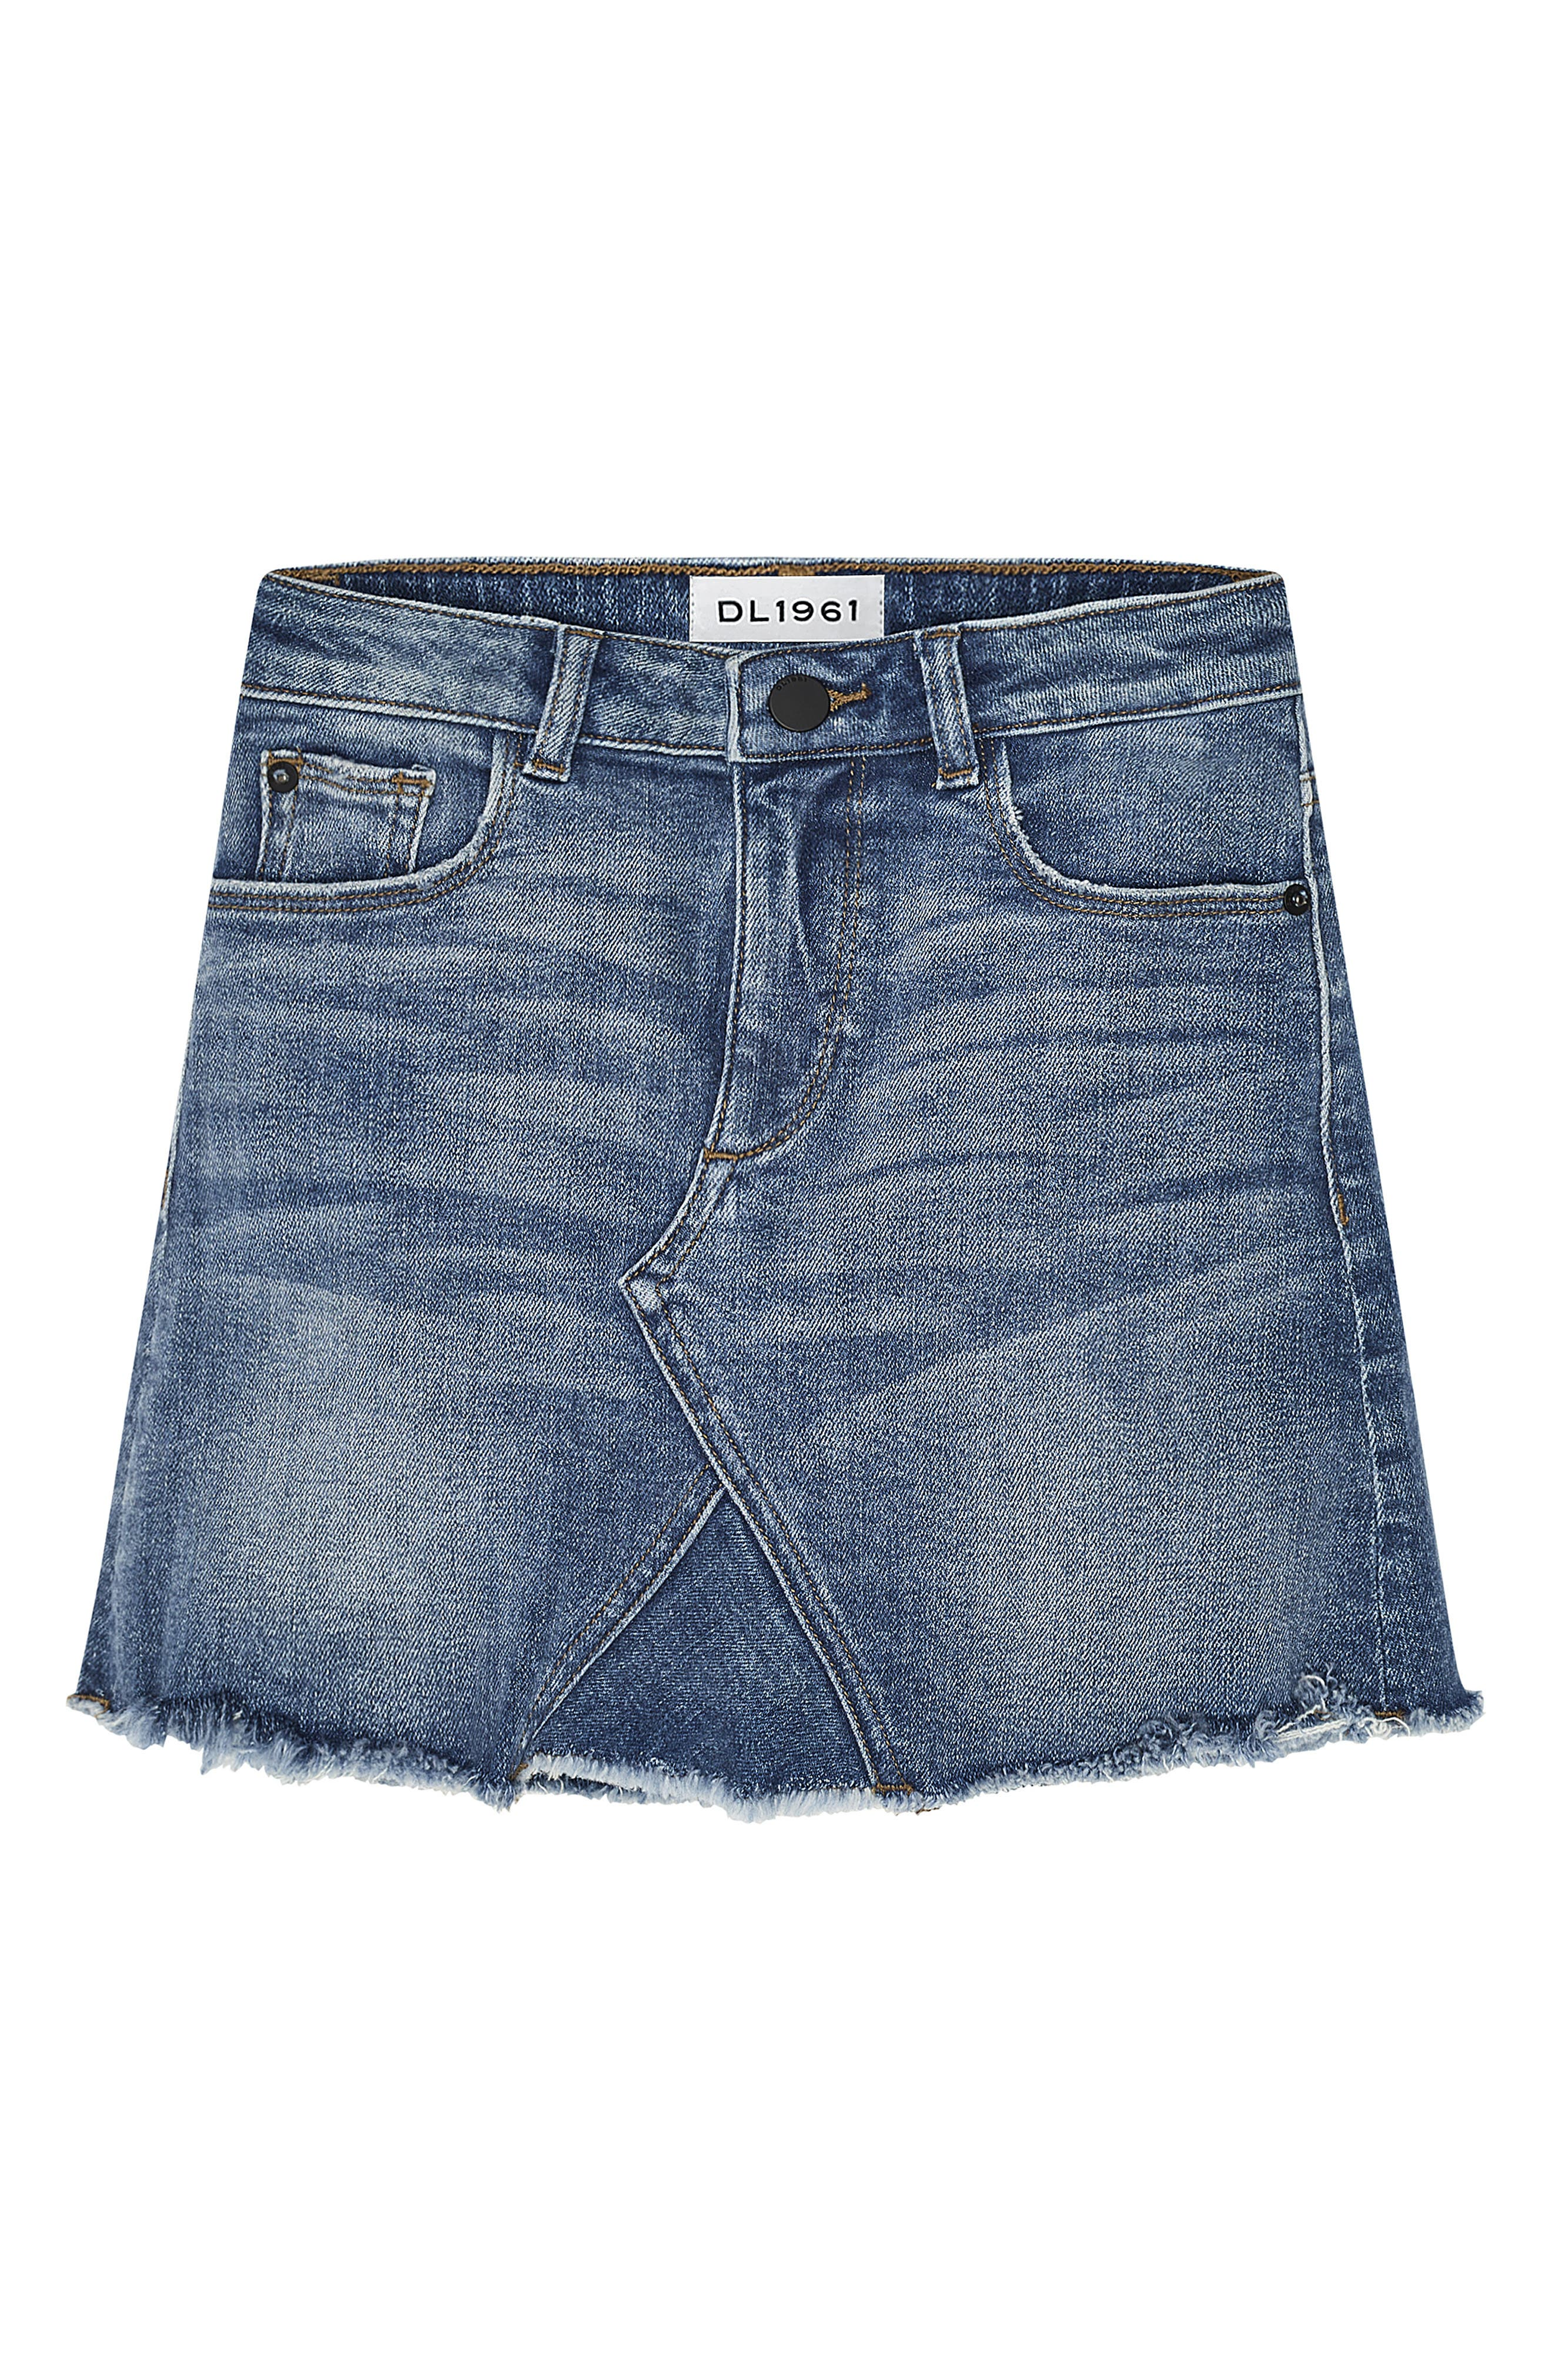 Denim Miniskirt,                         Main,                         color, BLUE ROSE